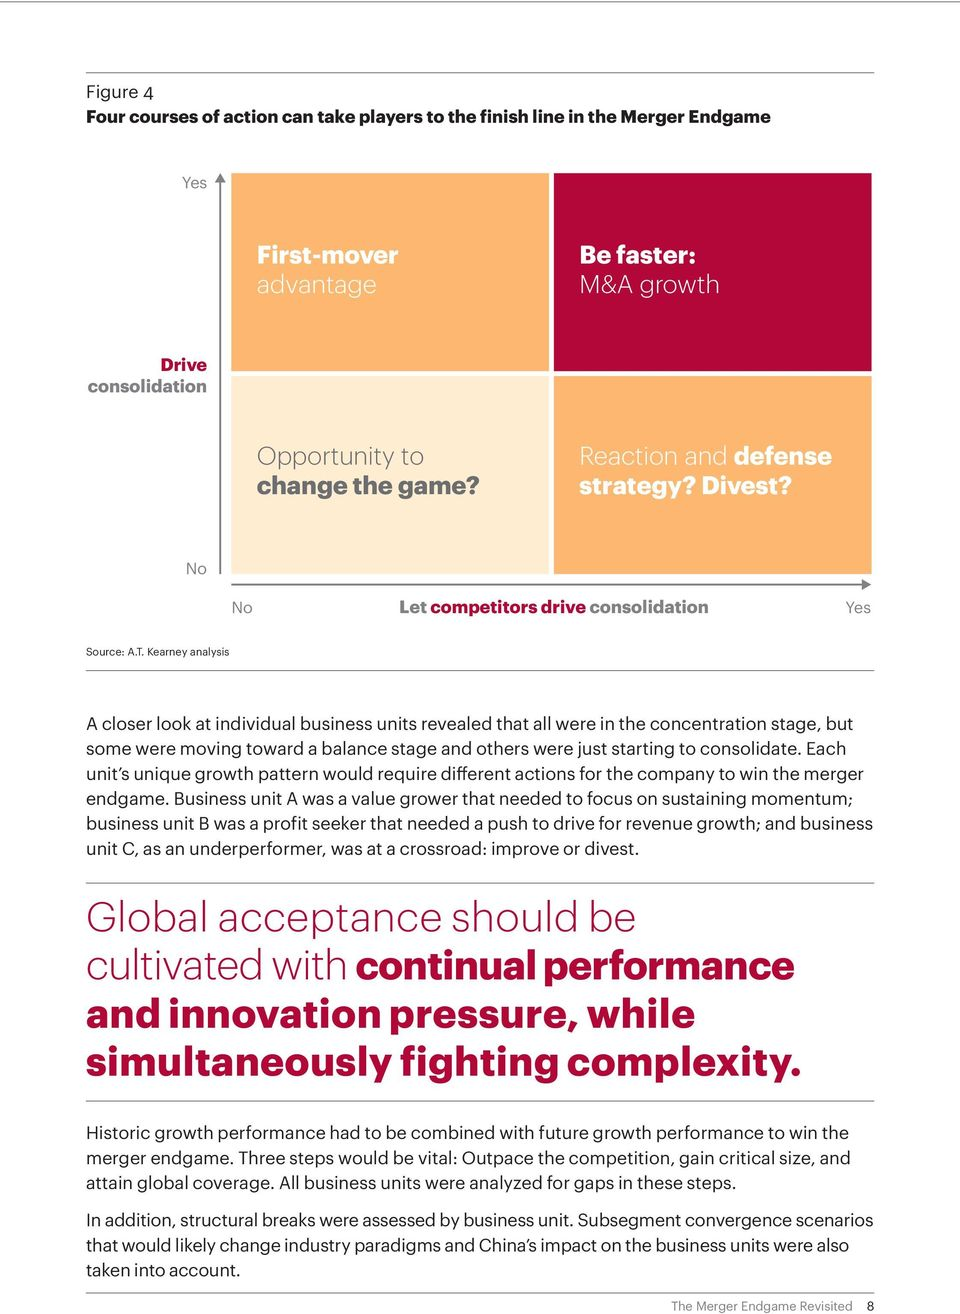 Kearney analysis A closer look at individual business units revealed that all were in the concentration stage, but some were moving toward a balance stage and others were just starting to consolidate.